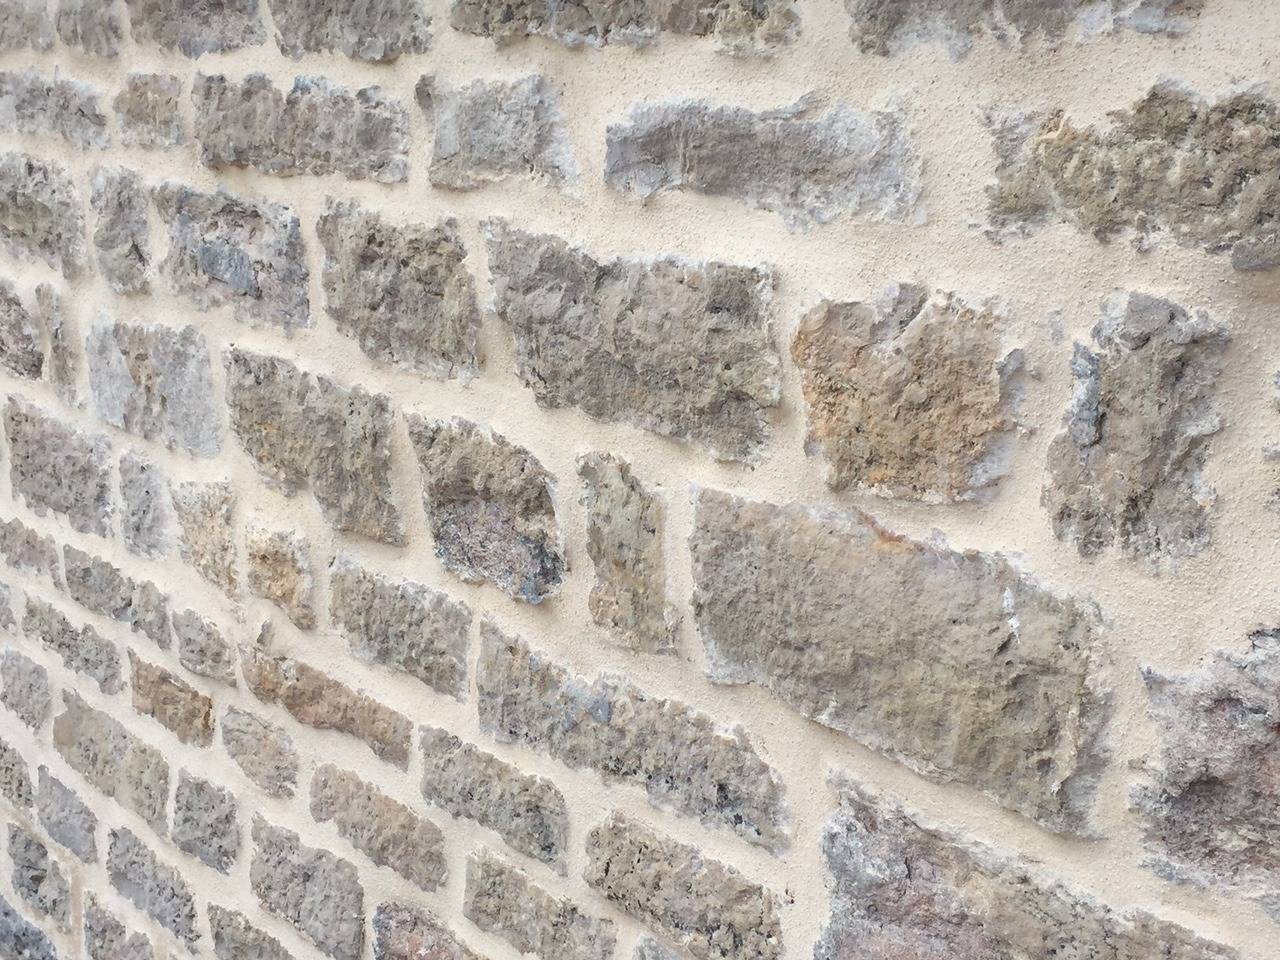 French Antique Limestone Wall Surround, 18th Century, France For Sale 3